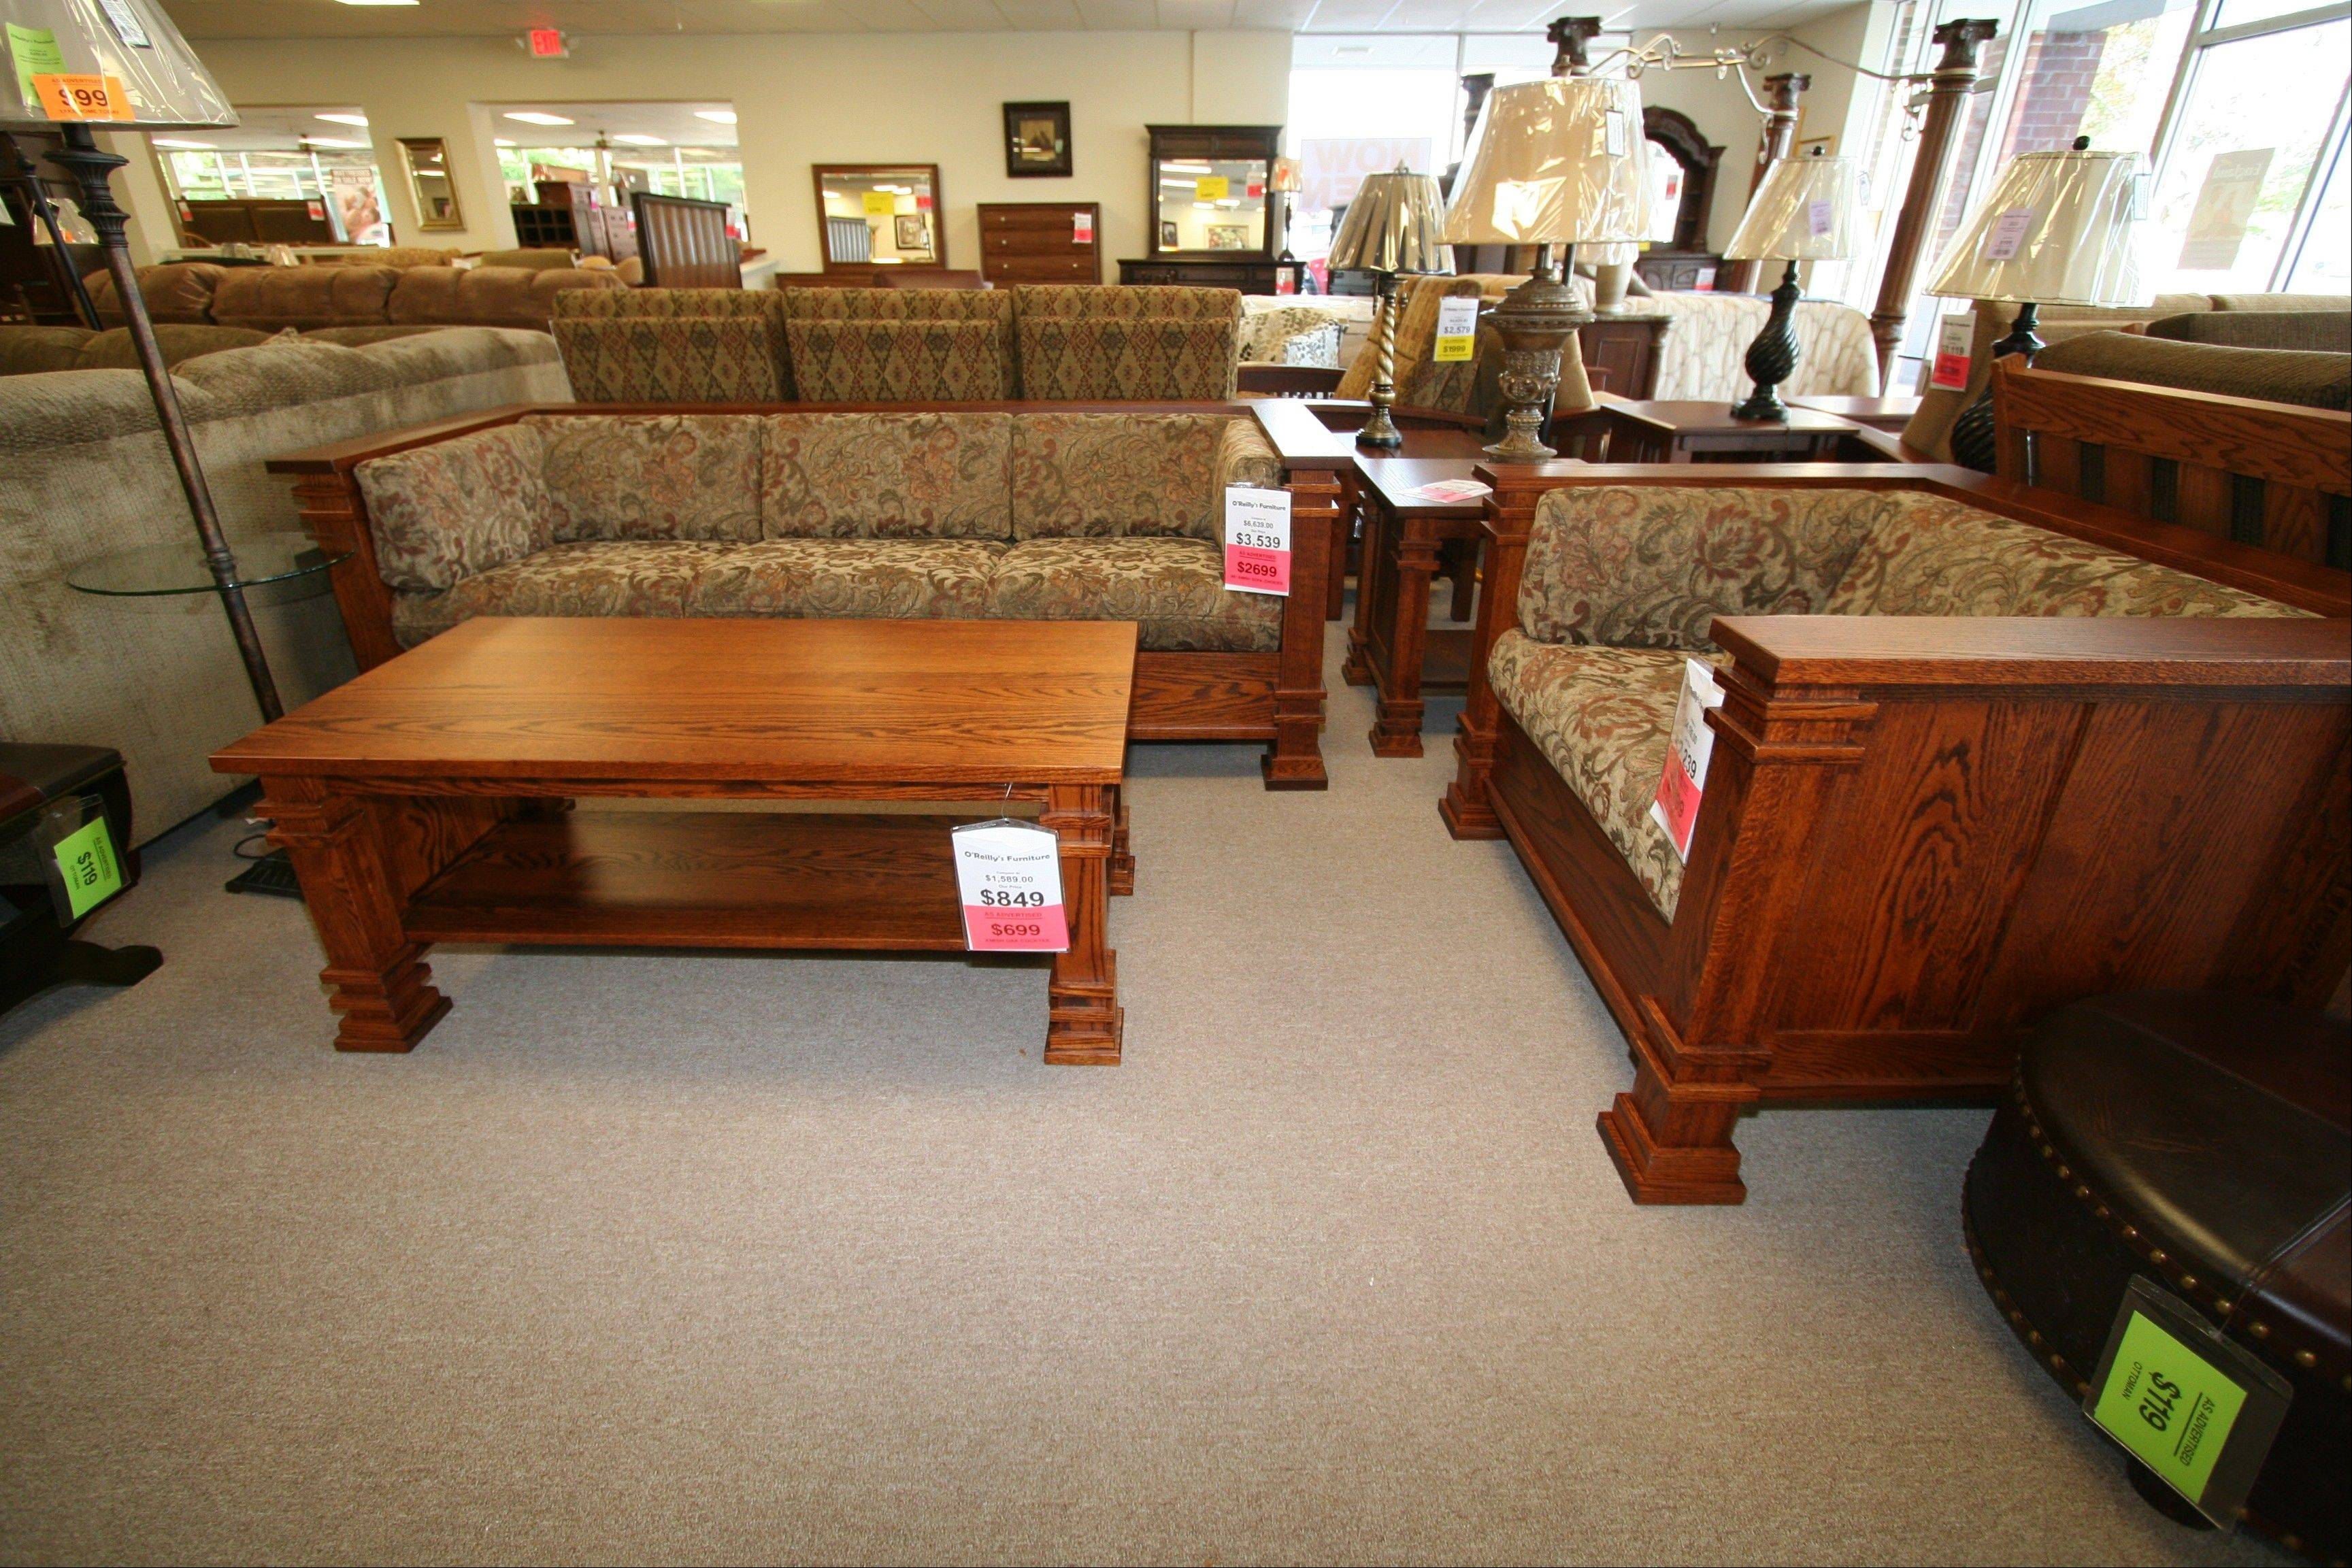 Custom-made Amish furniture is popular today, O'Reilly said.